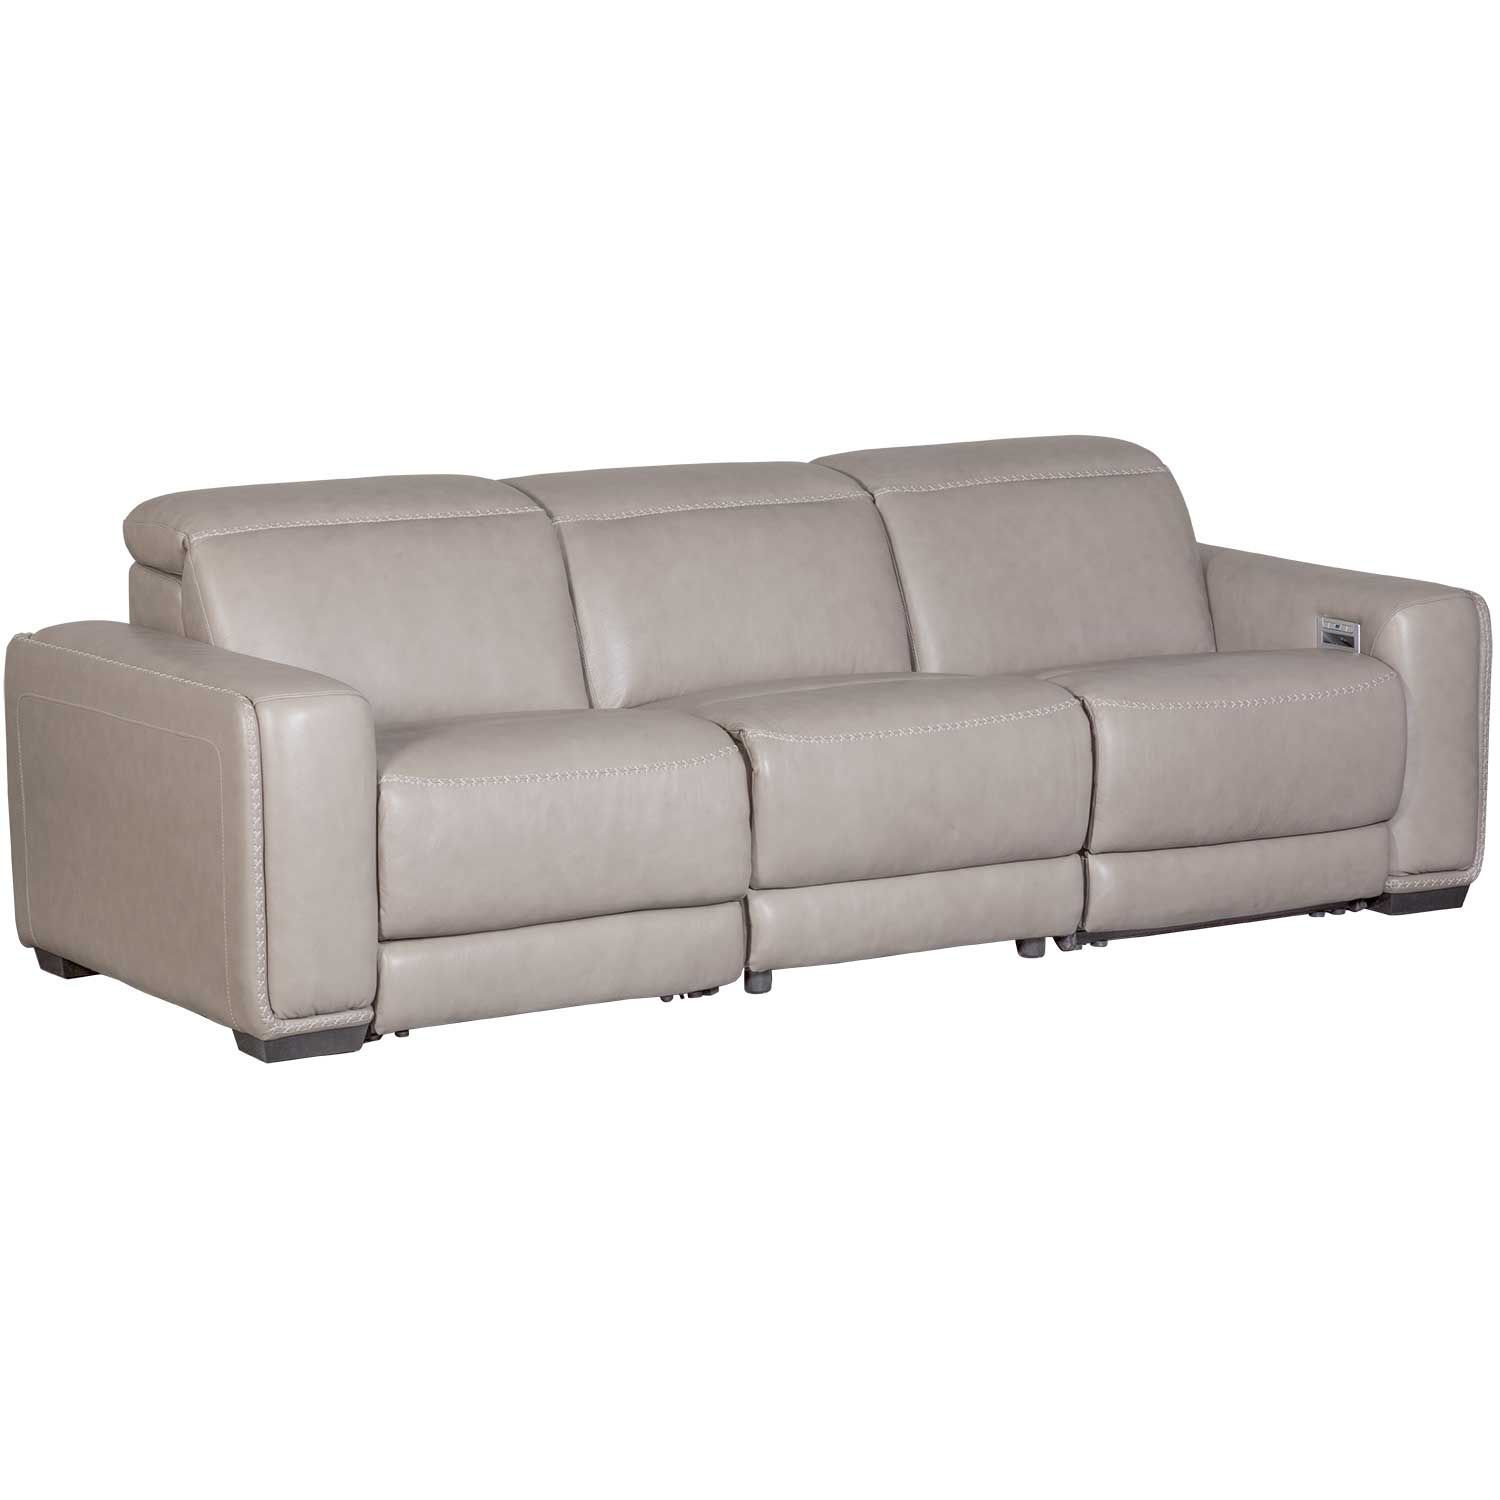 Picture of Correze Leather Power Reclining Sofa with Adjustab